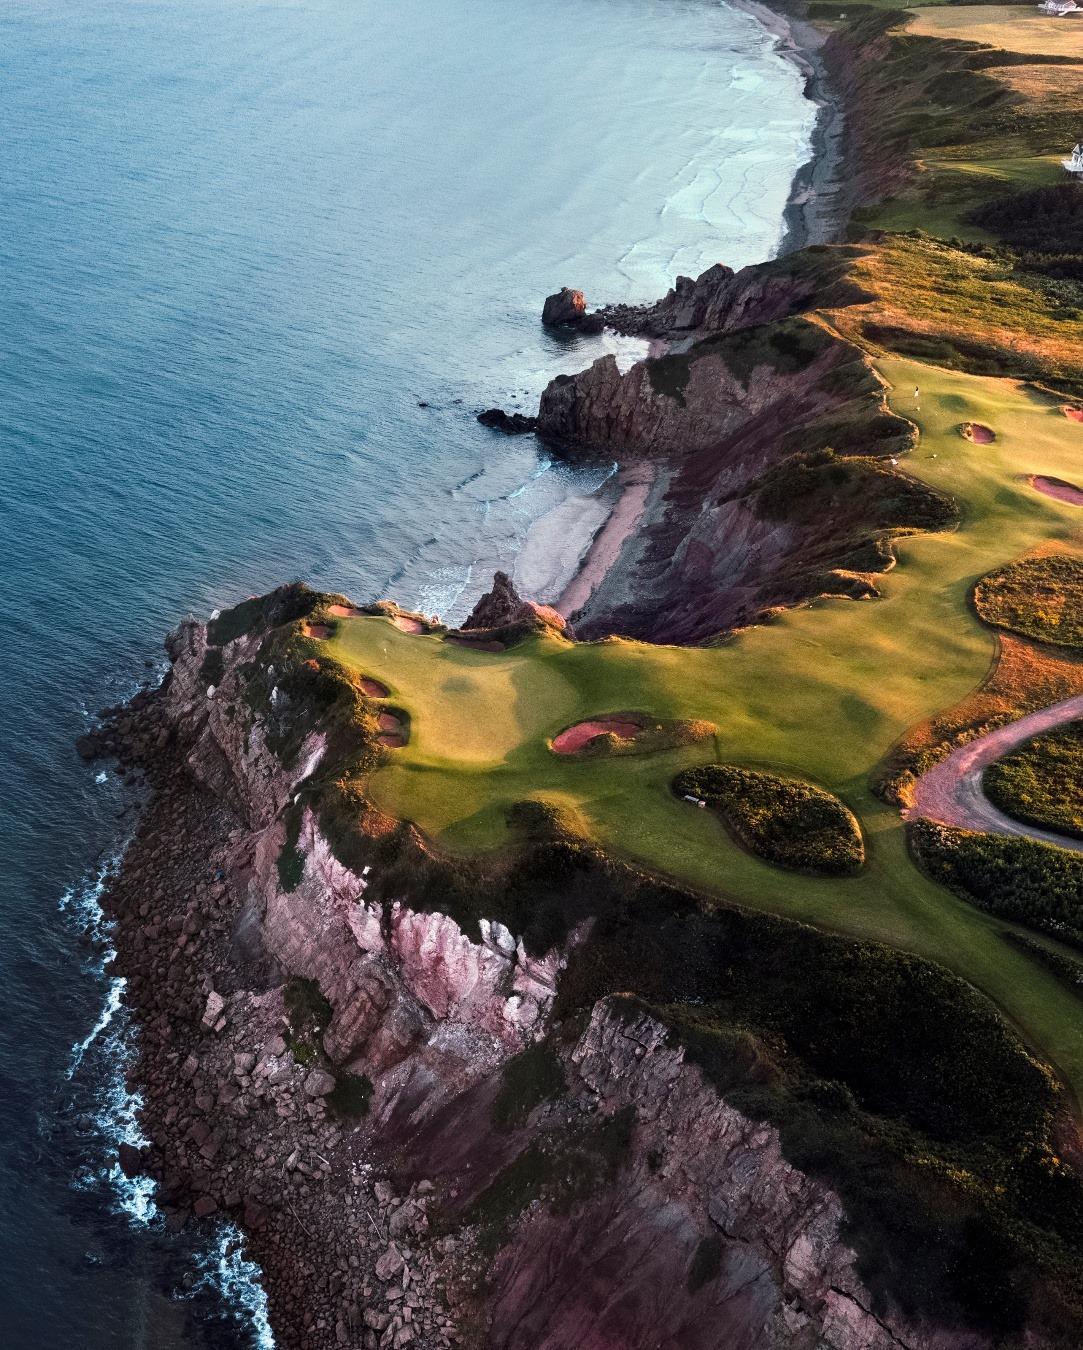 CABOT LINKS— - Top 100 in the WorldCabot Cliffs - #50Cabot Links - #96-Golf Magazine, 2017-18Top Courses in CanadaCabot Cliffs - #1Cabot Links - #5- Golf Digest, 2017Top 10 Golf Courses: CanadaCabot Cliffs - #1Cabot Links - #4- Links Magazine